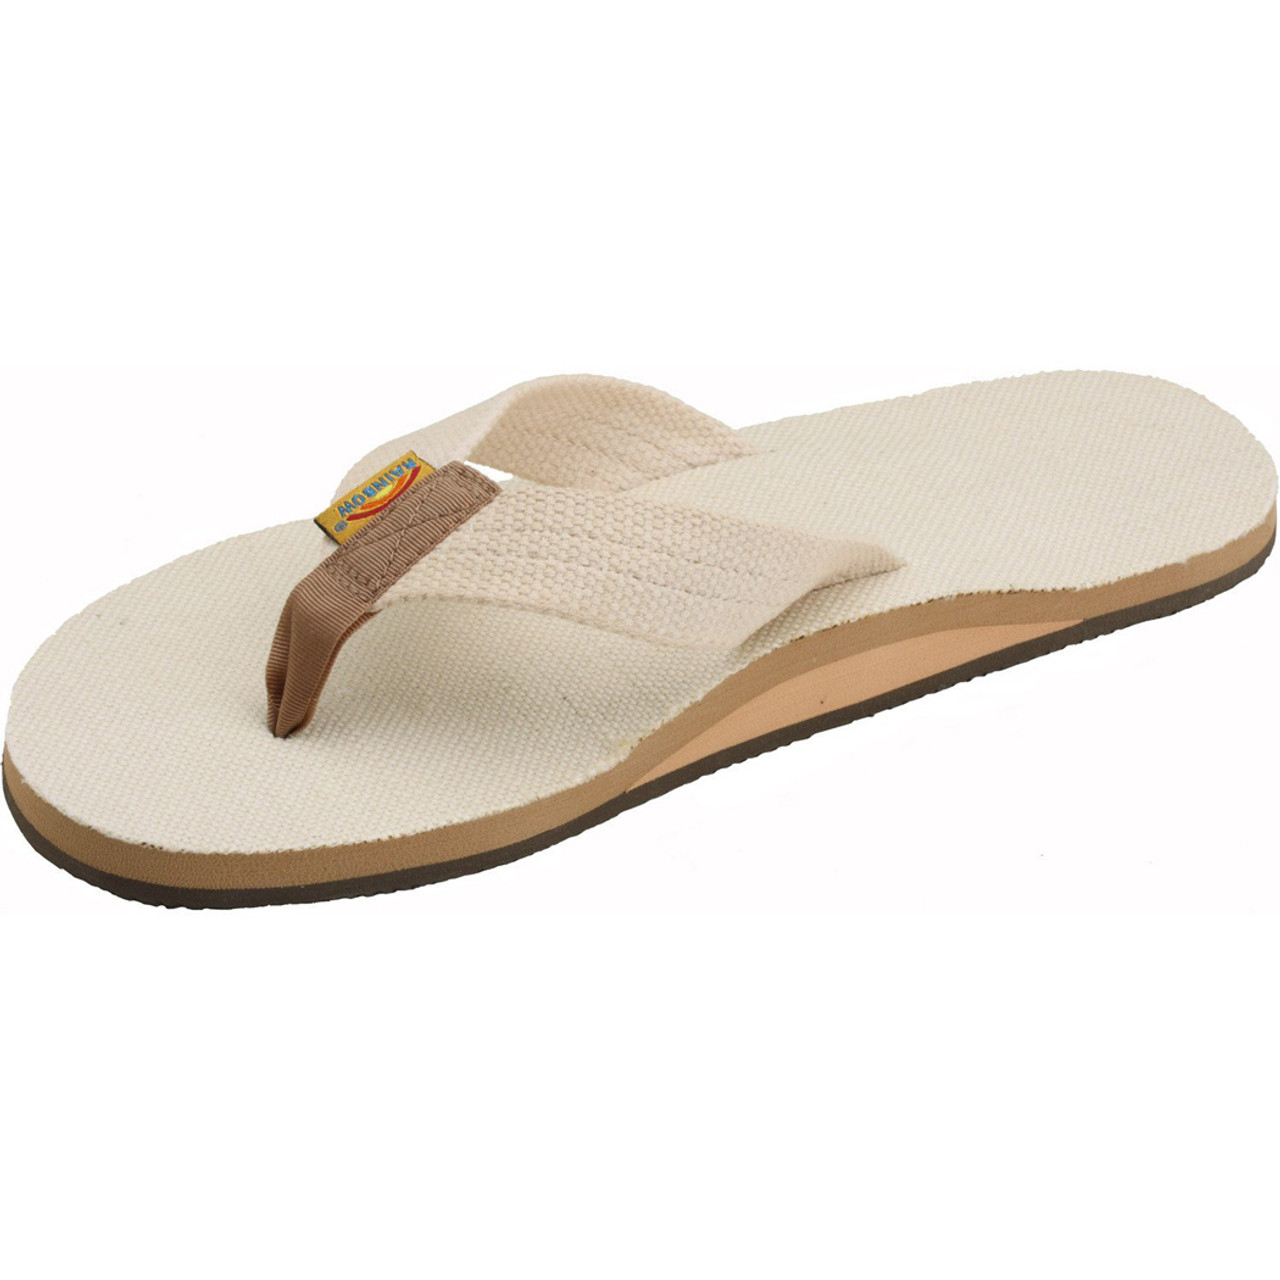 0a9bc2ce1528 Rainbow Women s Flip Flop - Hemp Top - Natural - Surf and Dirt